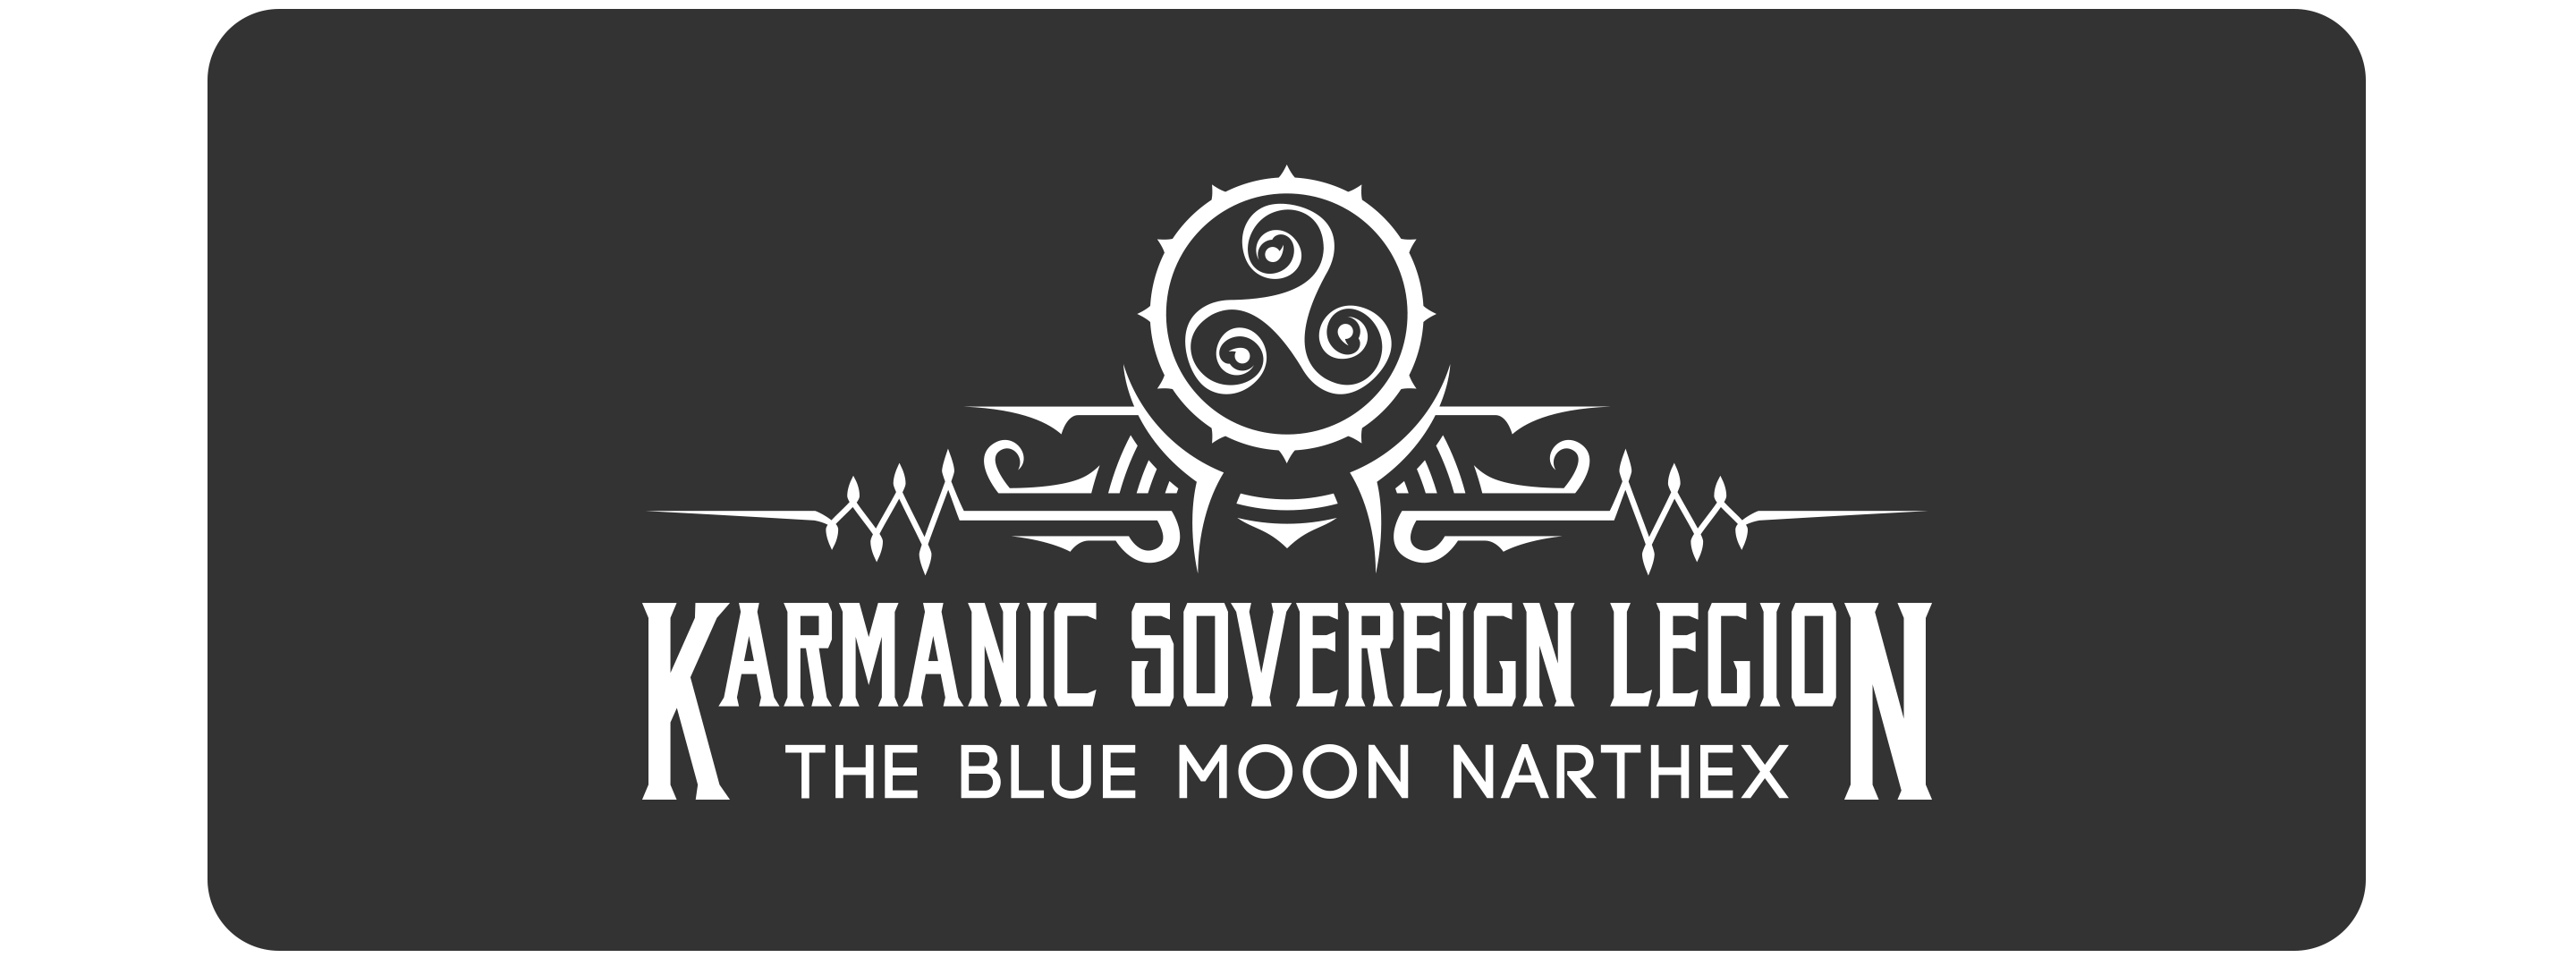 Karmanic Sovereign Legion